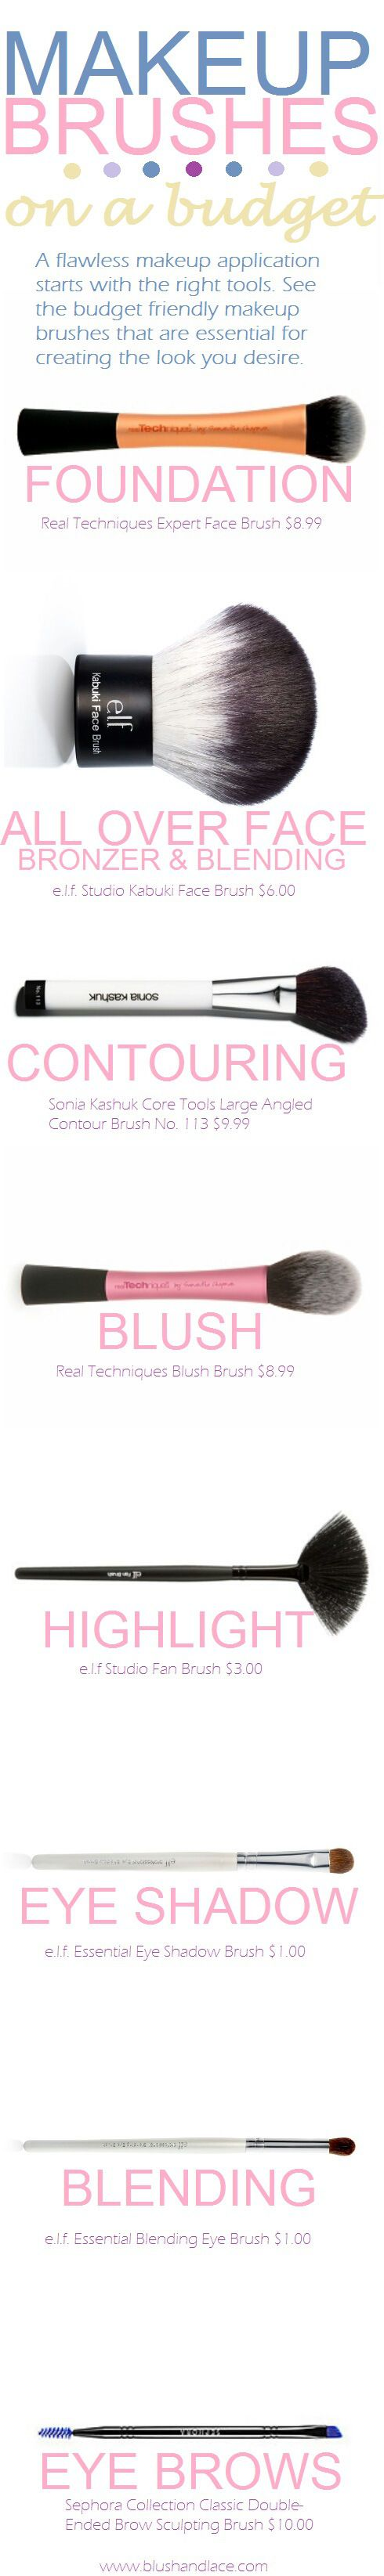 Makeup brushes for your whole face for under $50 #realtechniques @Keri Whaitiri Whaitiri Whaitiri Whaitiri Joan